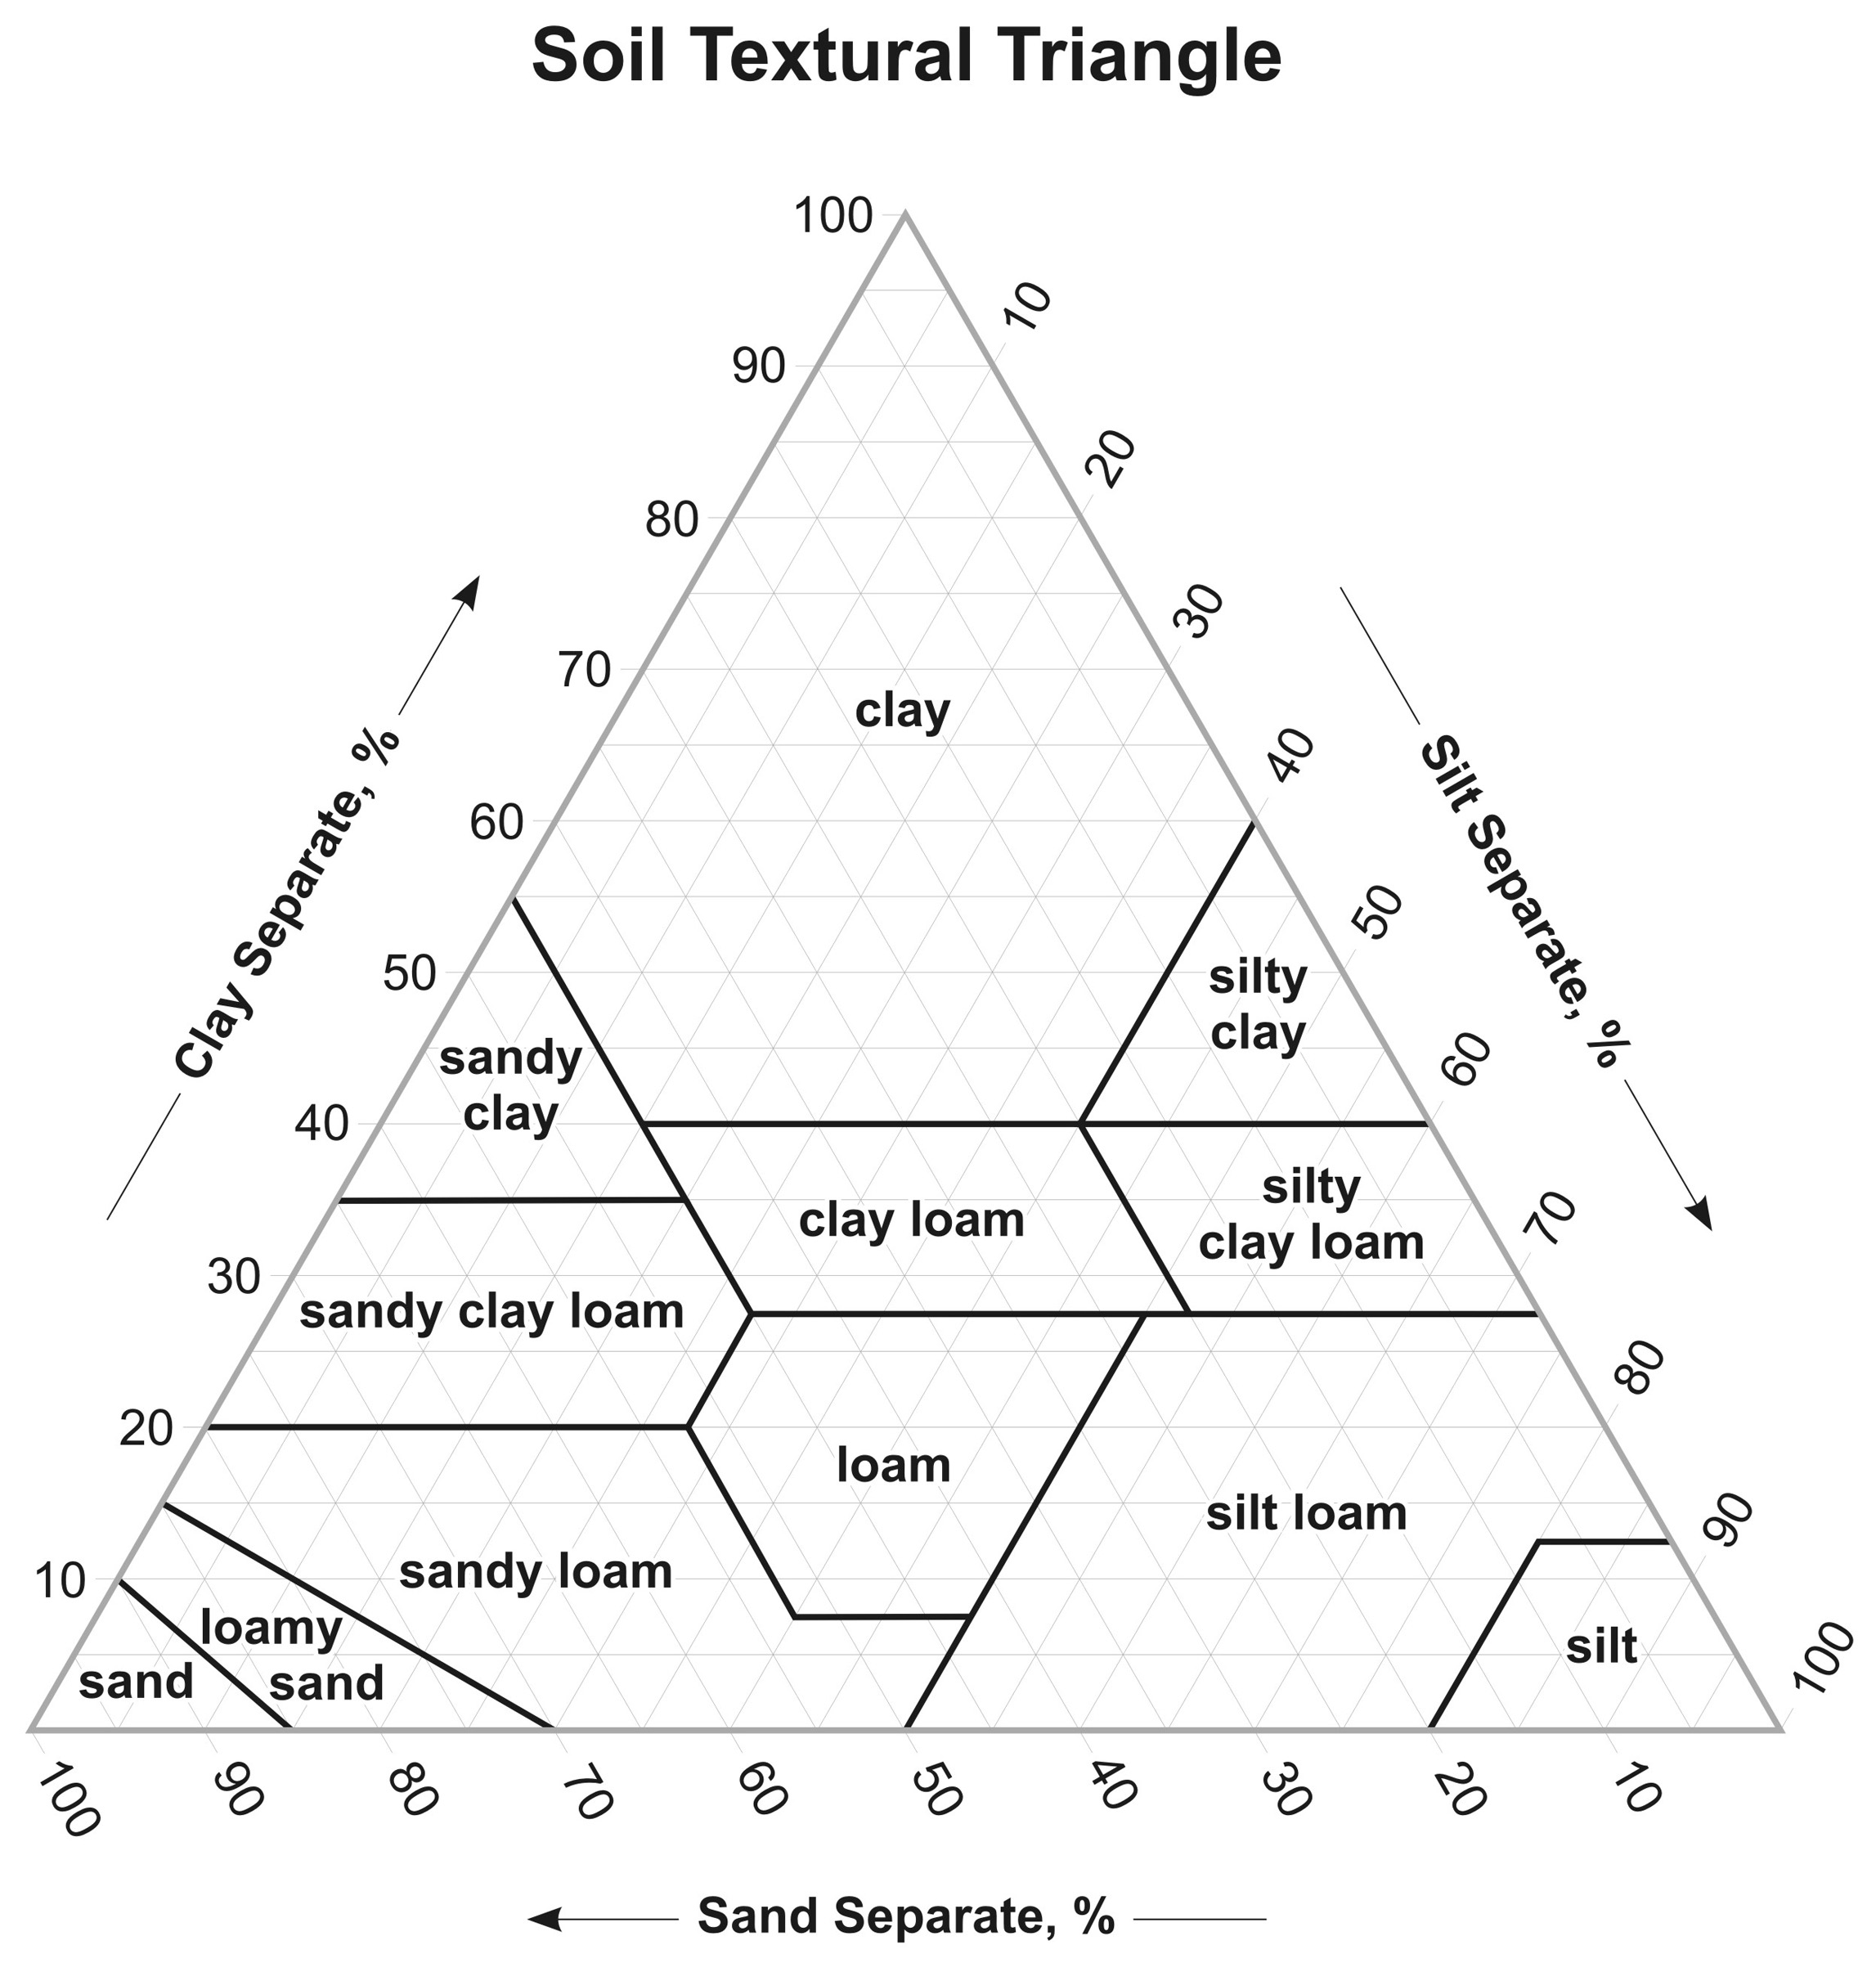 Guide to Texture by Feel | NRCS Soils